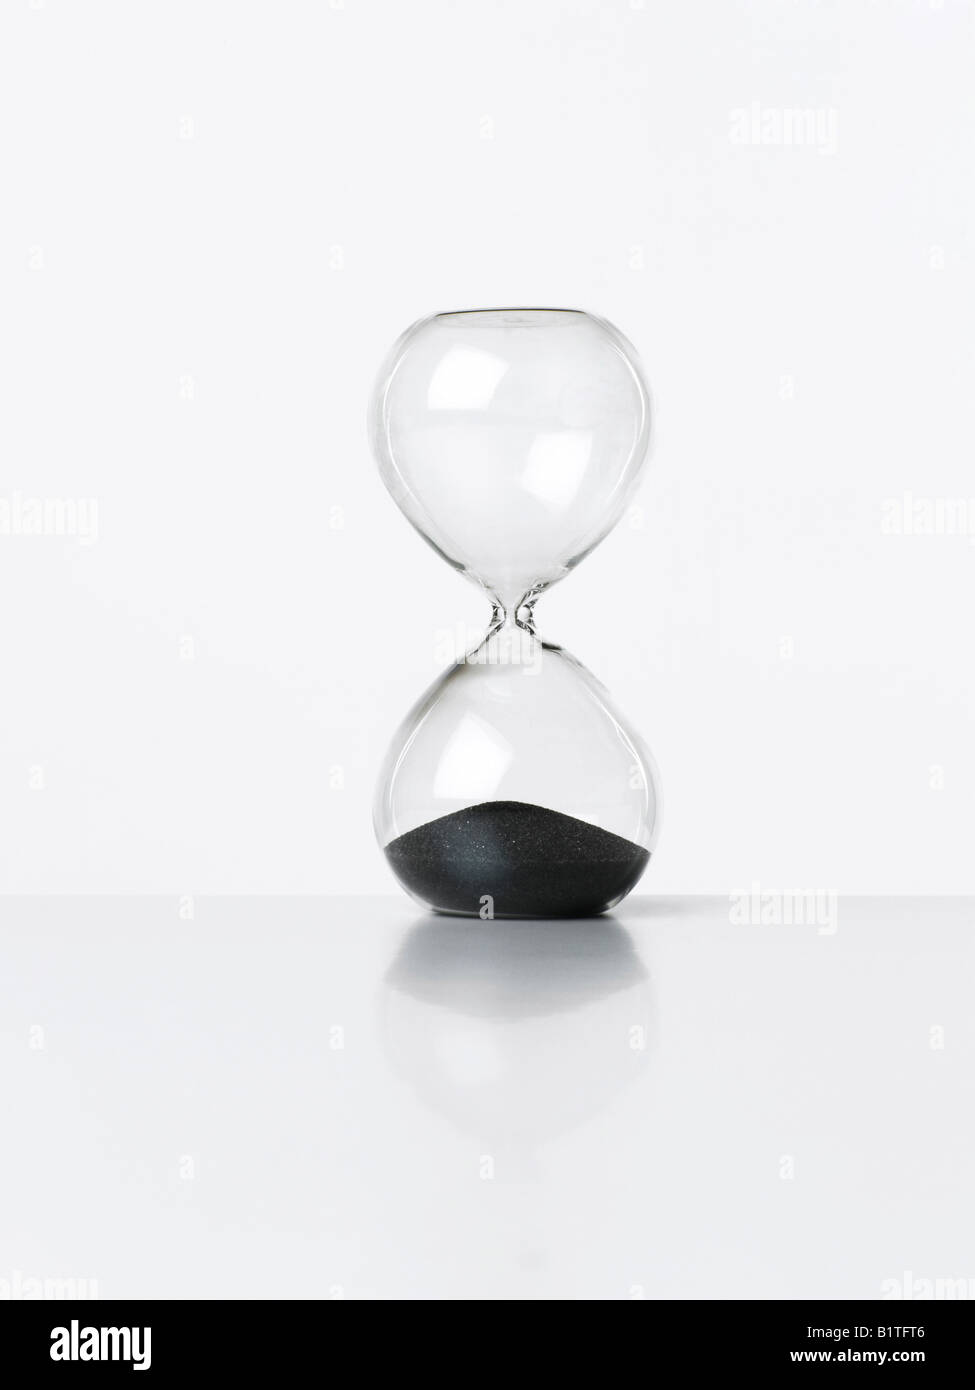 egg timer - Stock Image